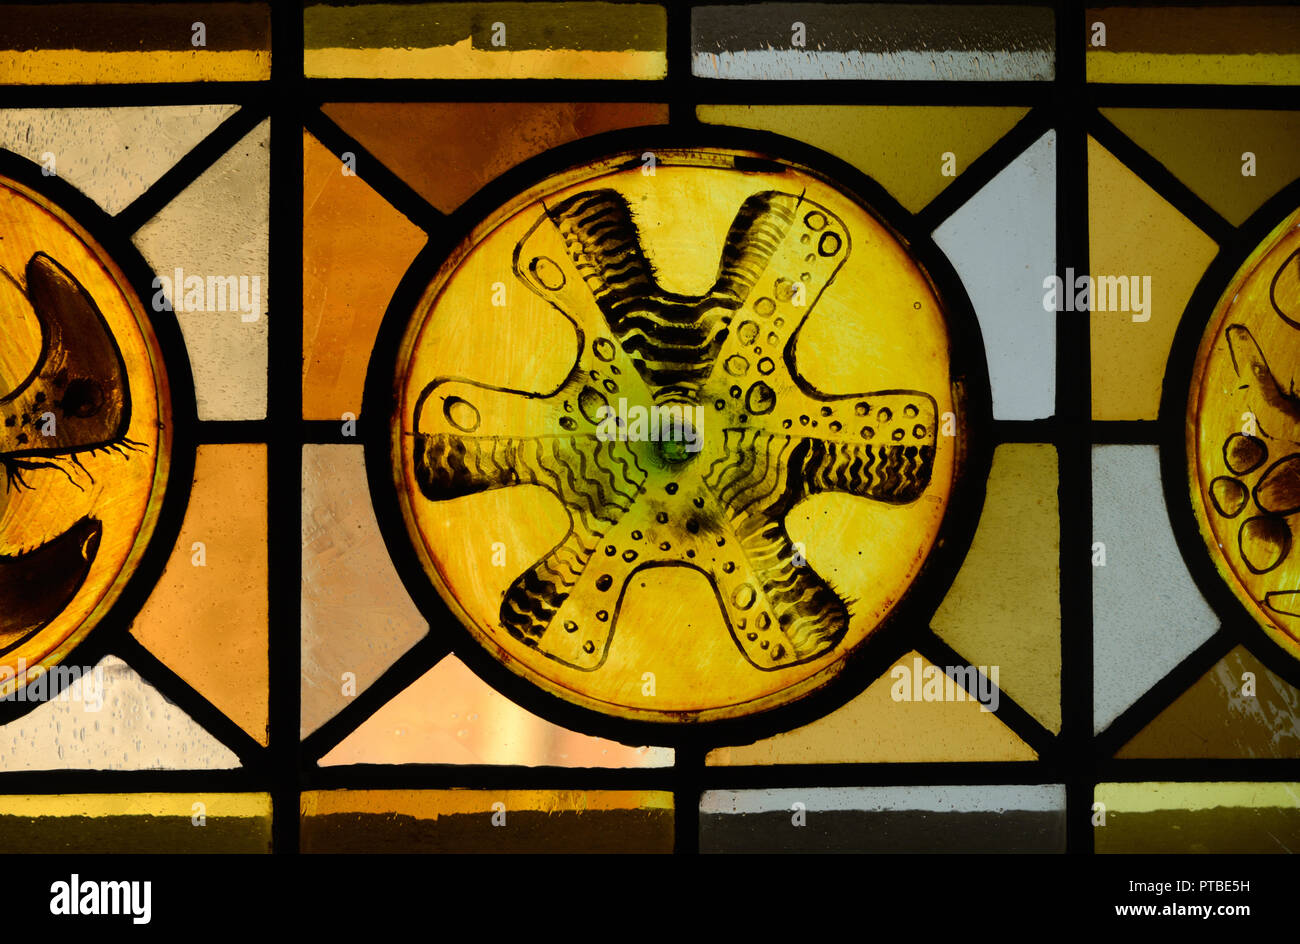 Abstract or Geometric Patterns of Stained Glass Window in the Church of Saint Trophime Arles Provence France Stock Photo